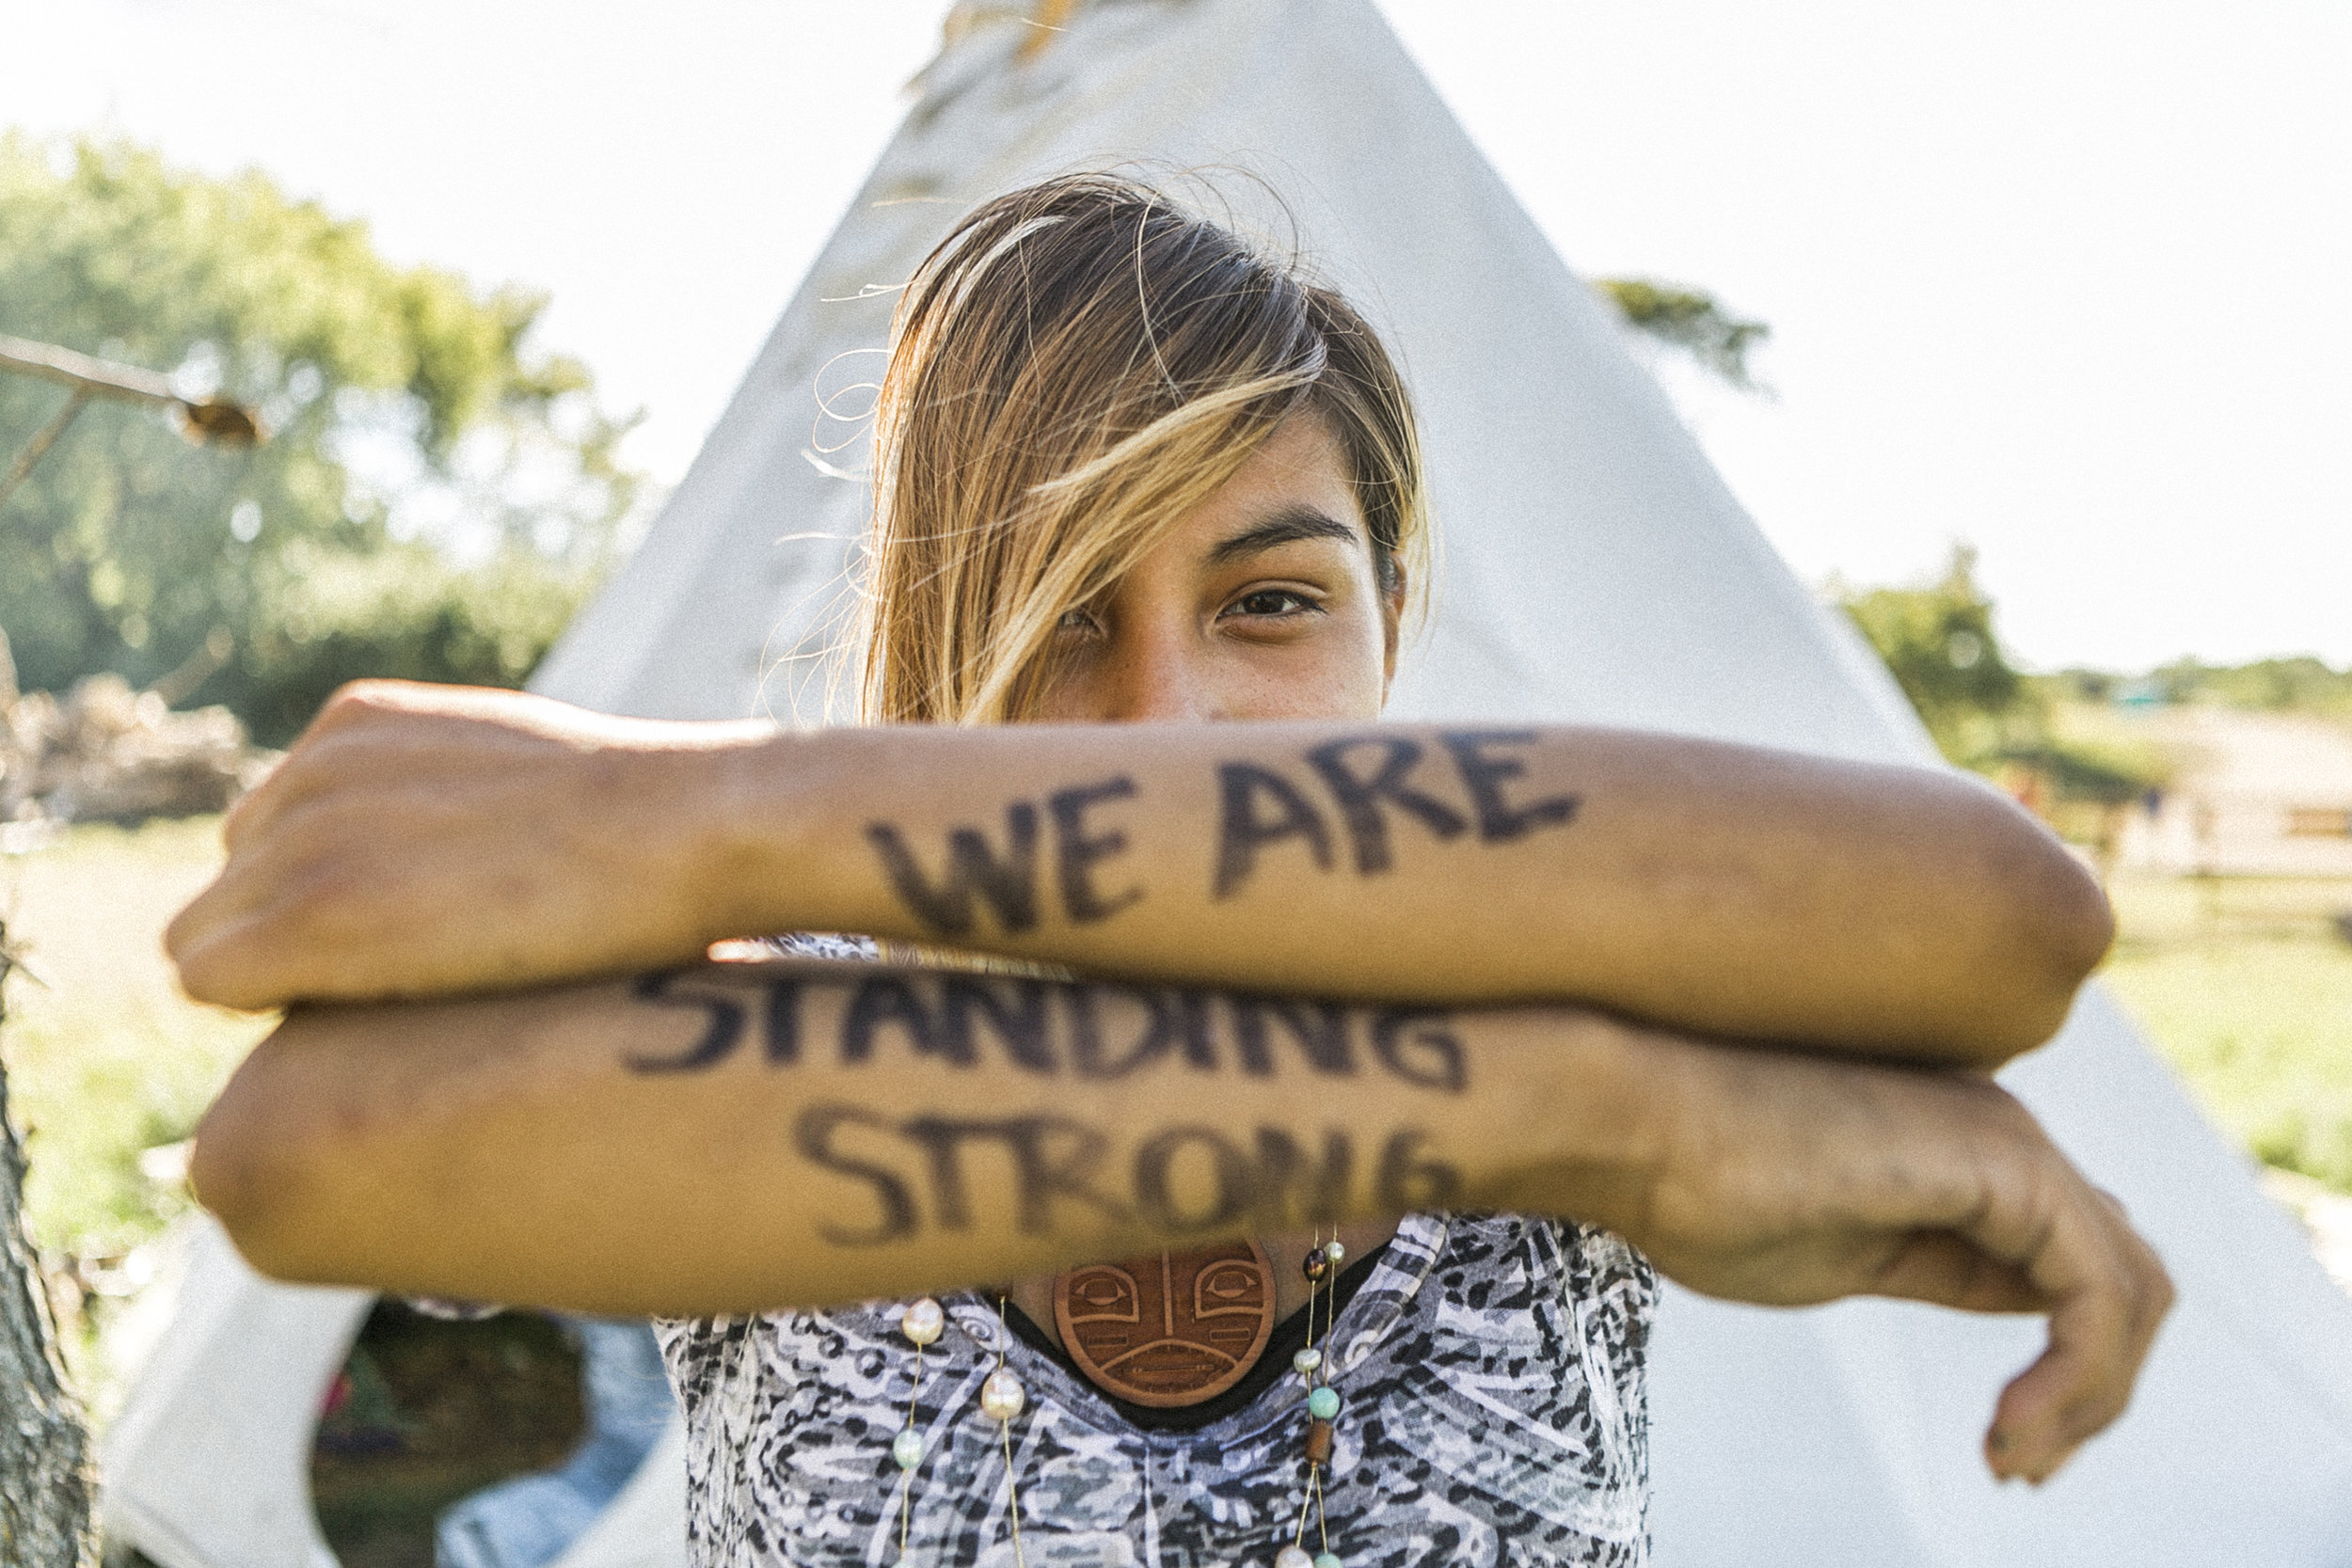 Jusilea Charger , 20, Eagle Butte, South Dakota: 'I would do anything for our children, so now I have to fight so they won't have to later. We continue to stand strong for generations to come.'